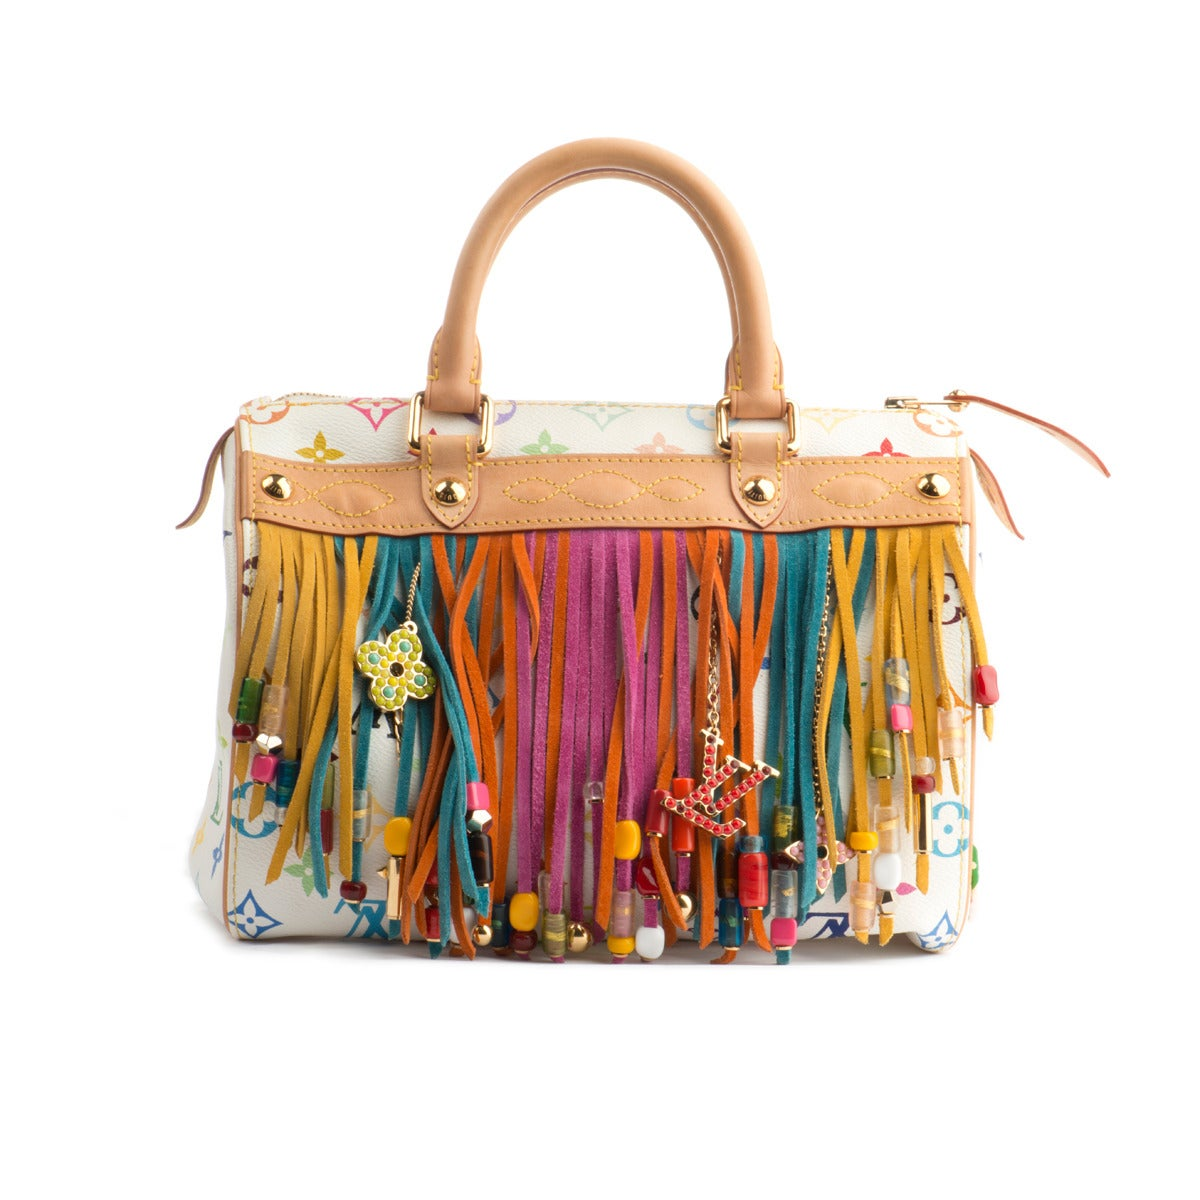 576fdd4d7d14 Fantastic and ultra rare Louis Vuitton multicolor fringe speedy 25 bag  Limited edition made by the